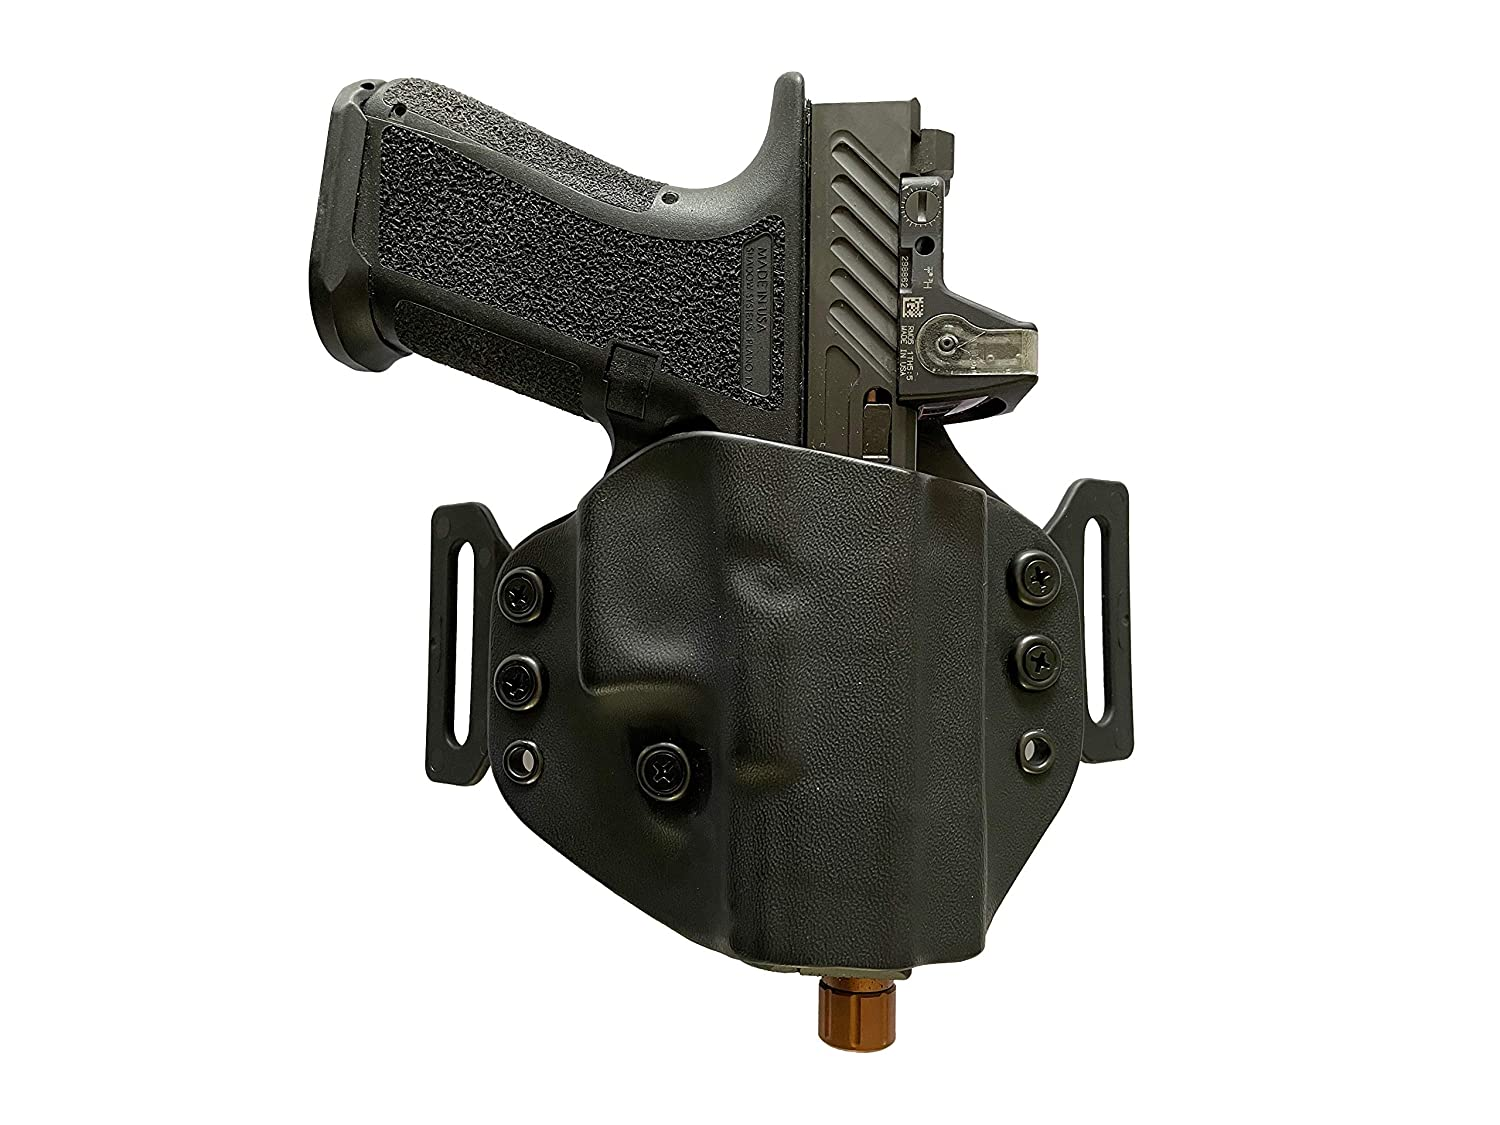 Elite Force Holsters OWB Kydex Threaded Cut Don't miss the campaign Holster New sales Barrel RMR